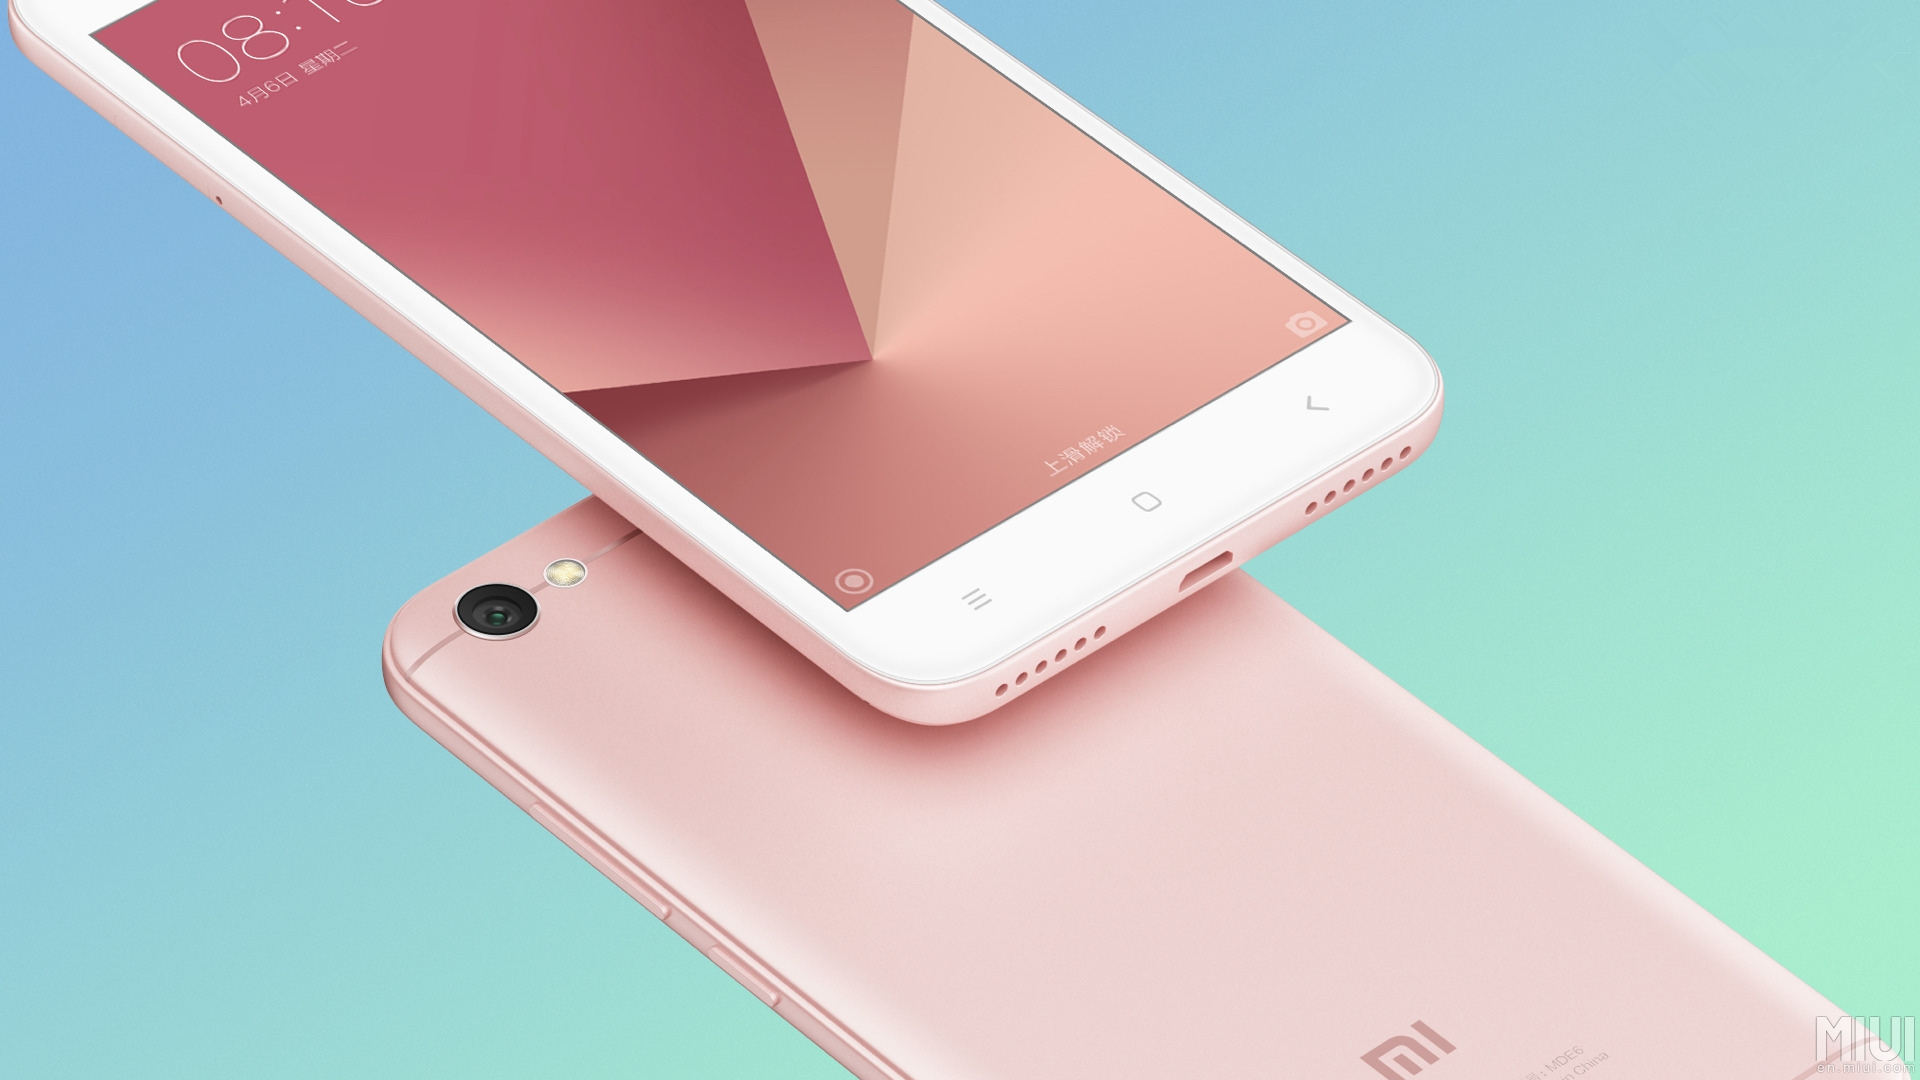 2-xiaomi-redmi-5a-is-confirmed-to-launch-on-august-21.jpg